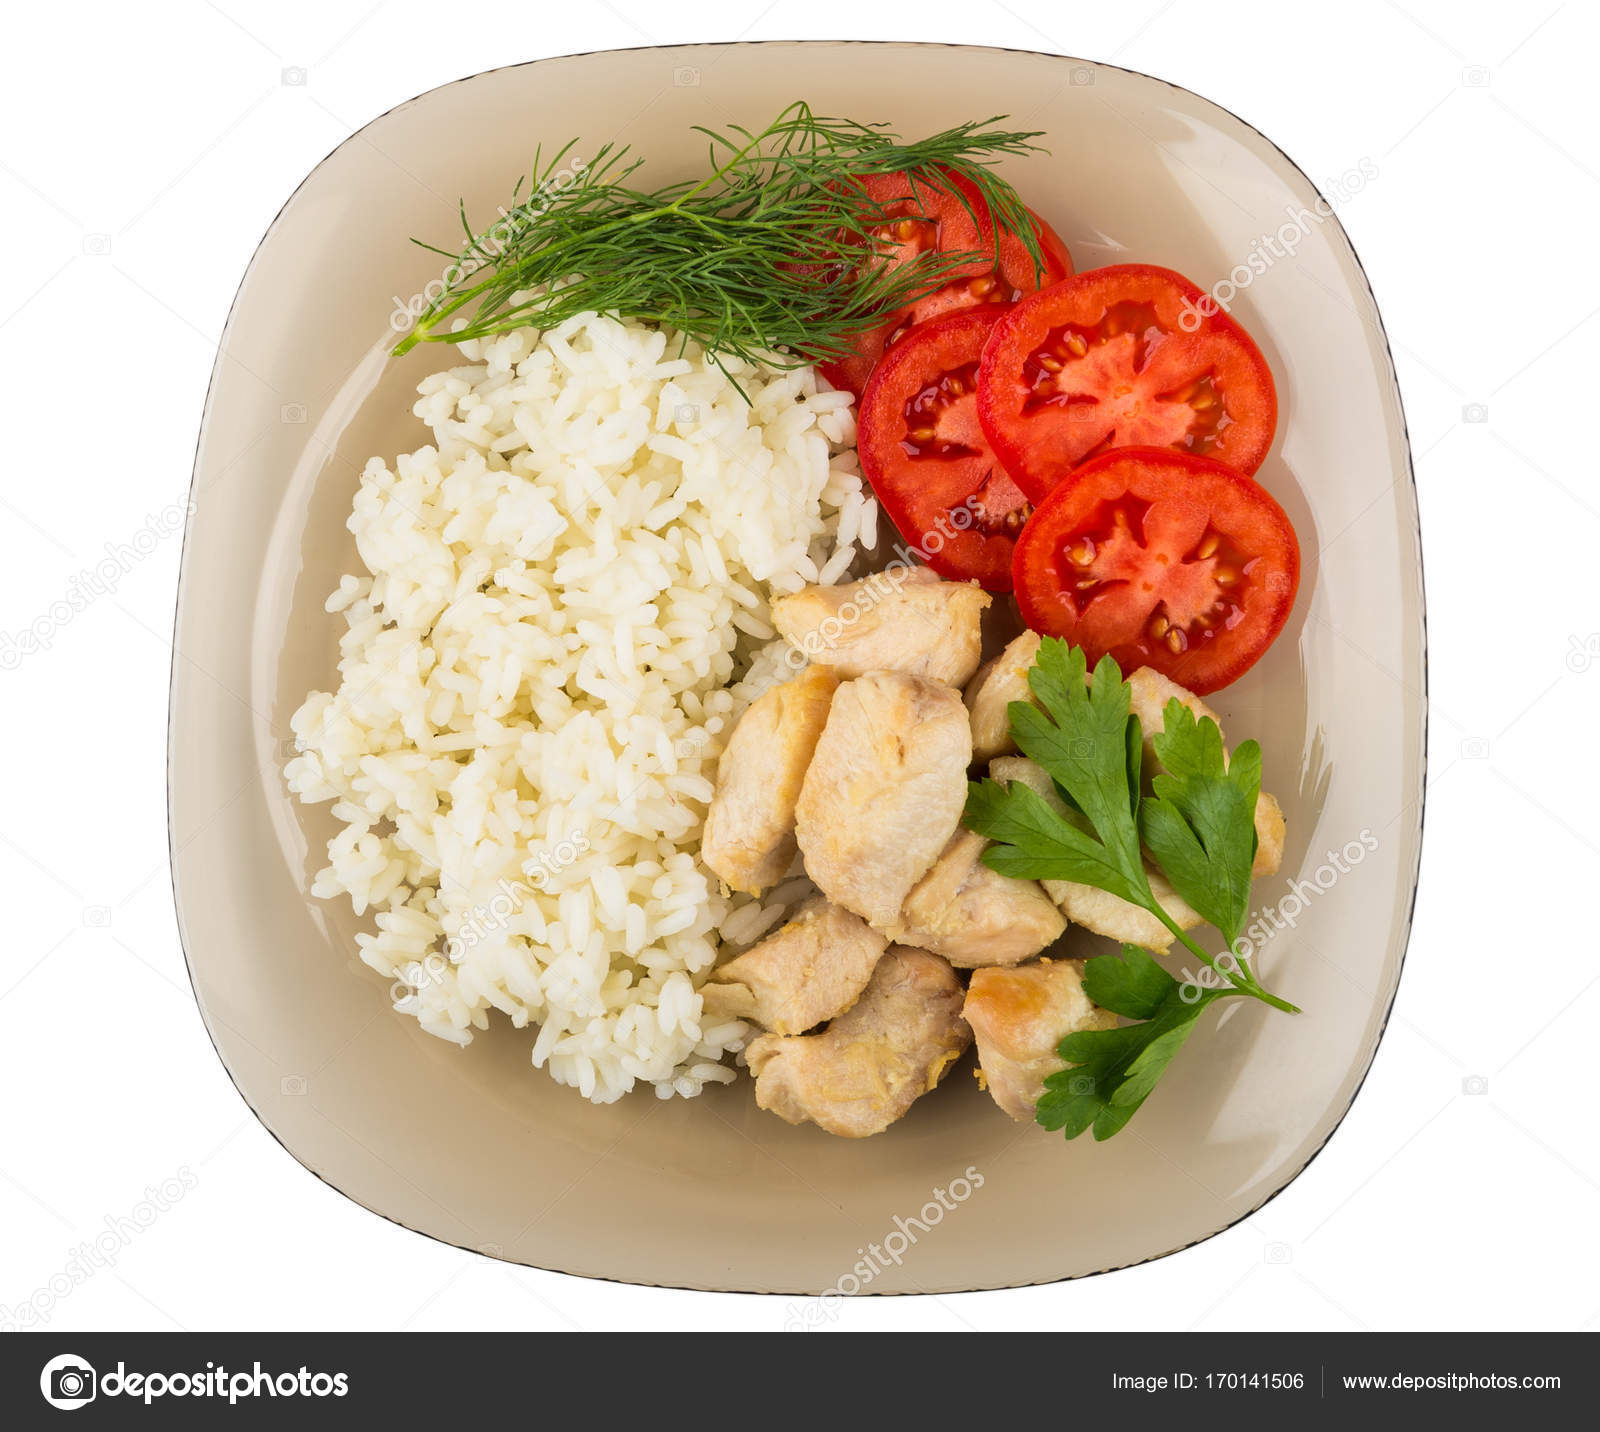 Fried Chicken Meat With Rice And Tomatoes In Brown Plate